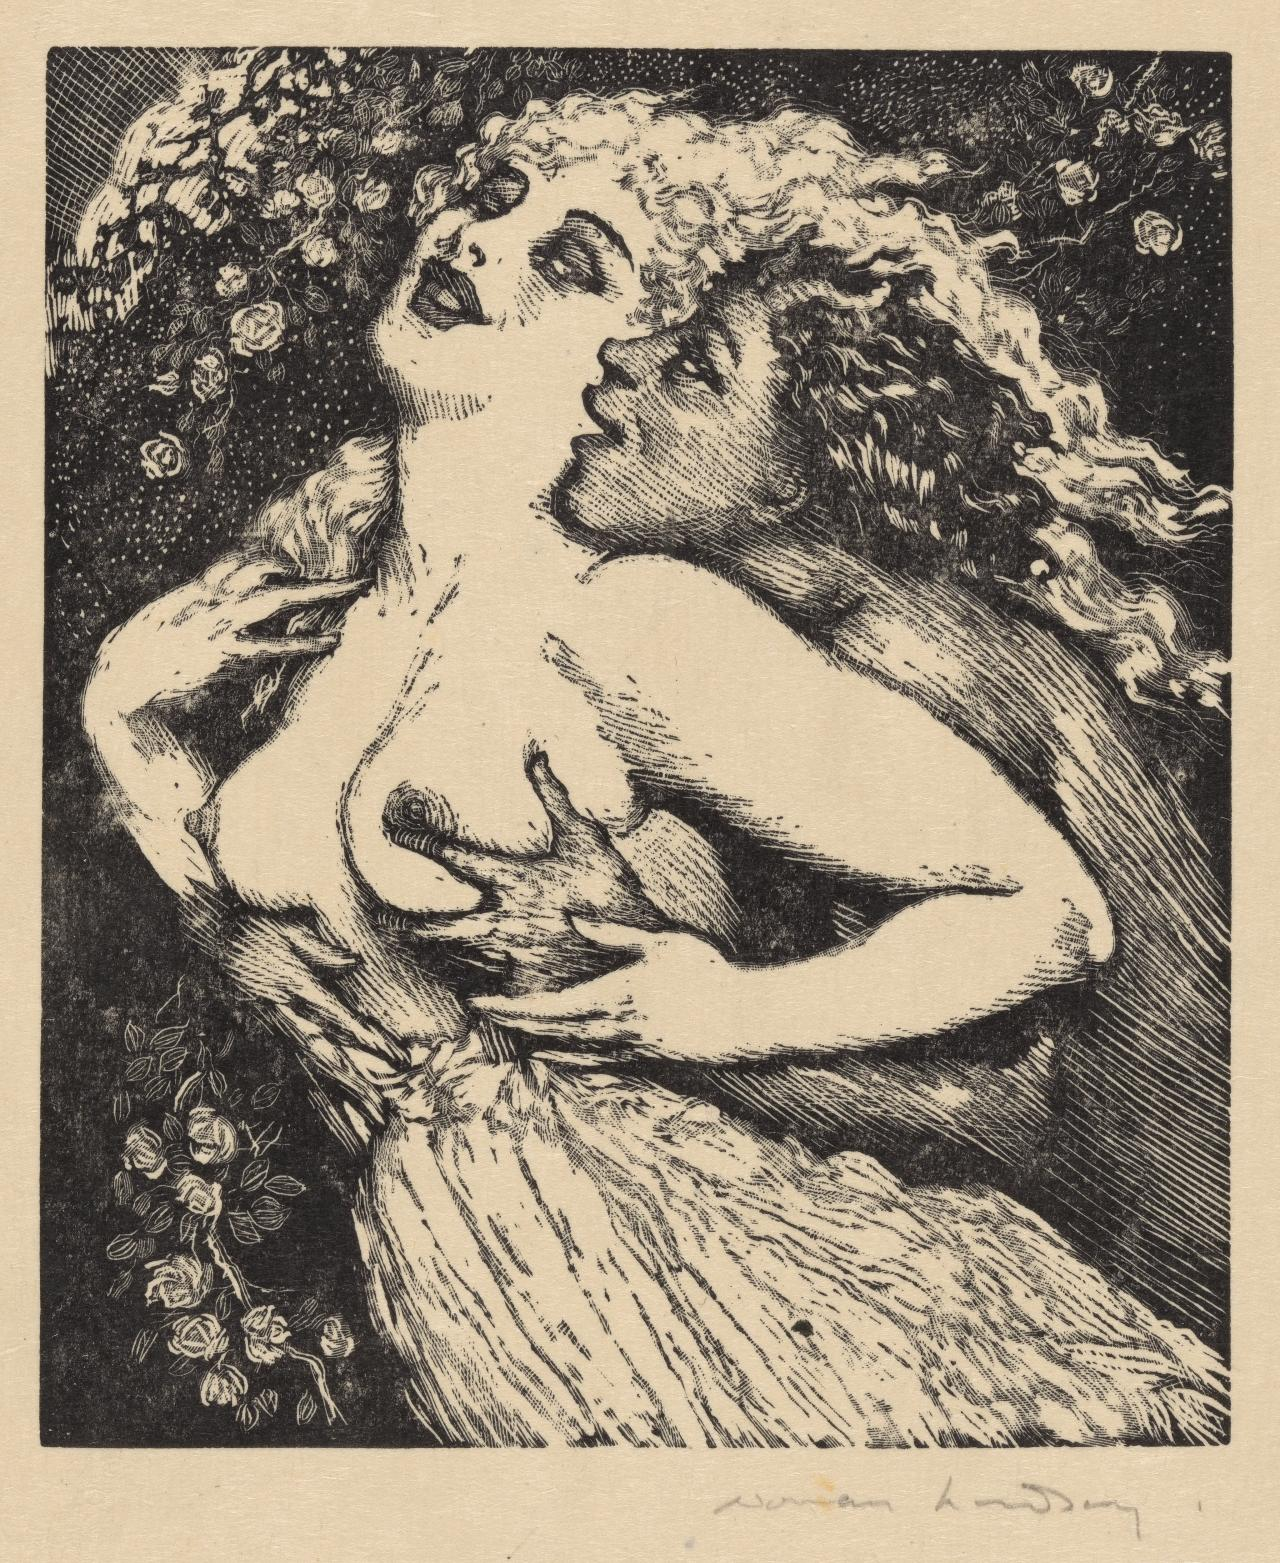 satyr embracing bare breasted woman from behind norman lindsay